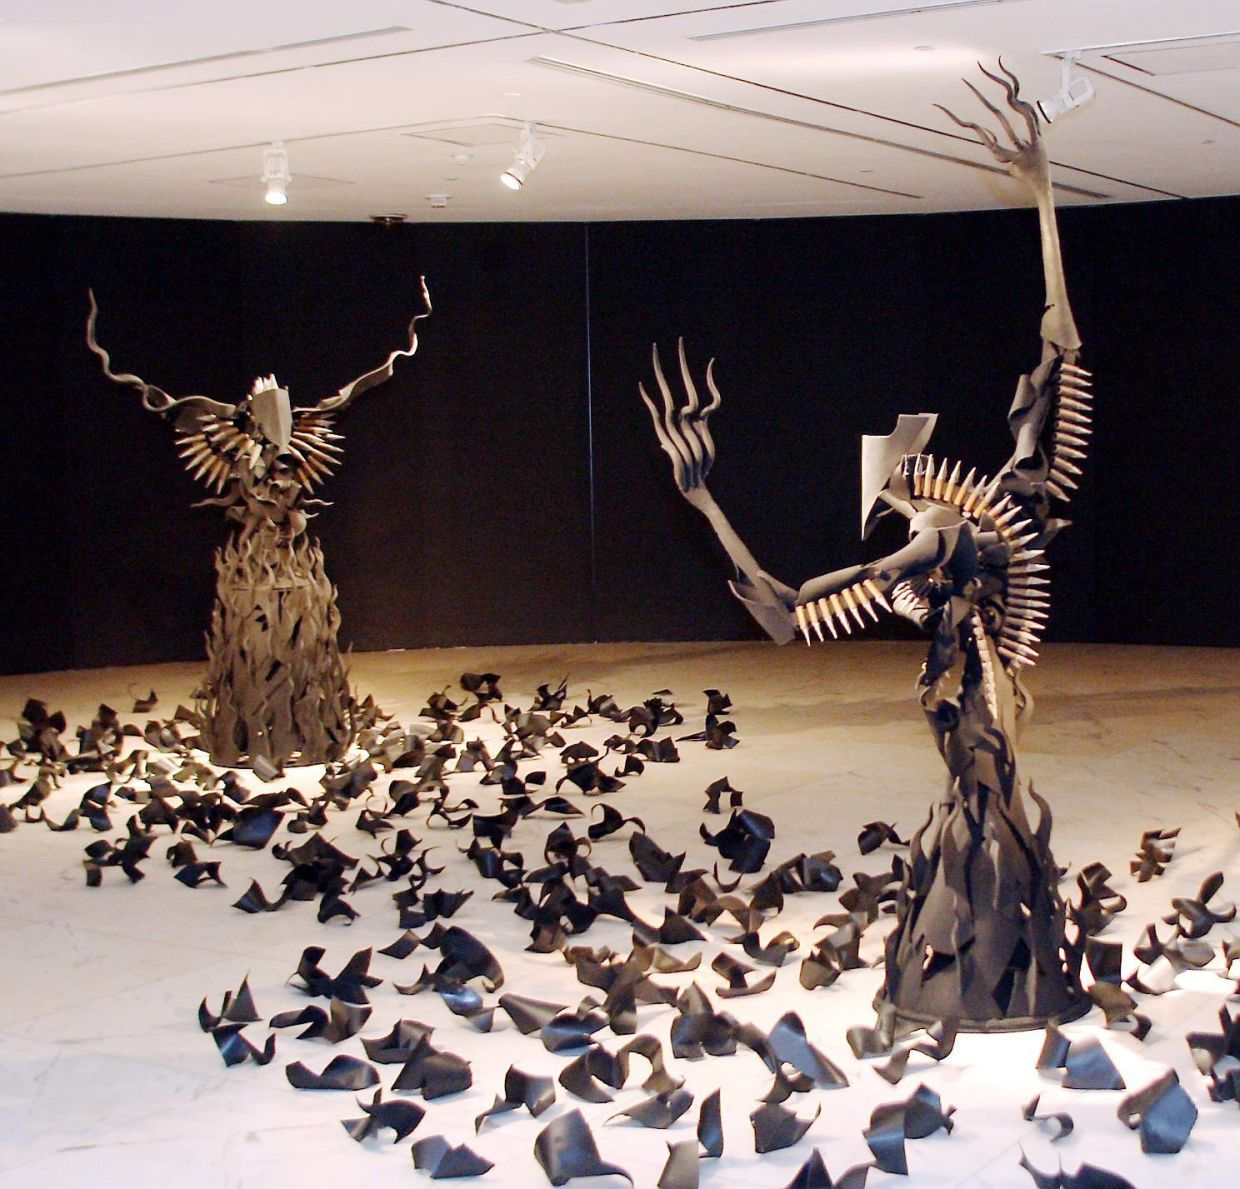 Renowned sculptor Raja Shariman's metal works from his 'Rhythm Of The 21st Century – Monologues Of Raja Shariman' show at Galeri Petronas in 2009. Photo: The Star